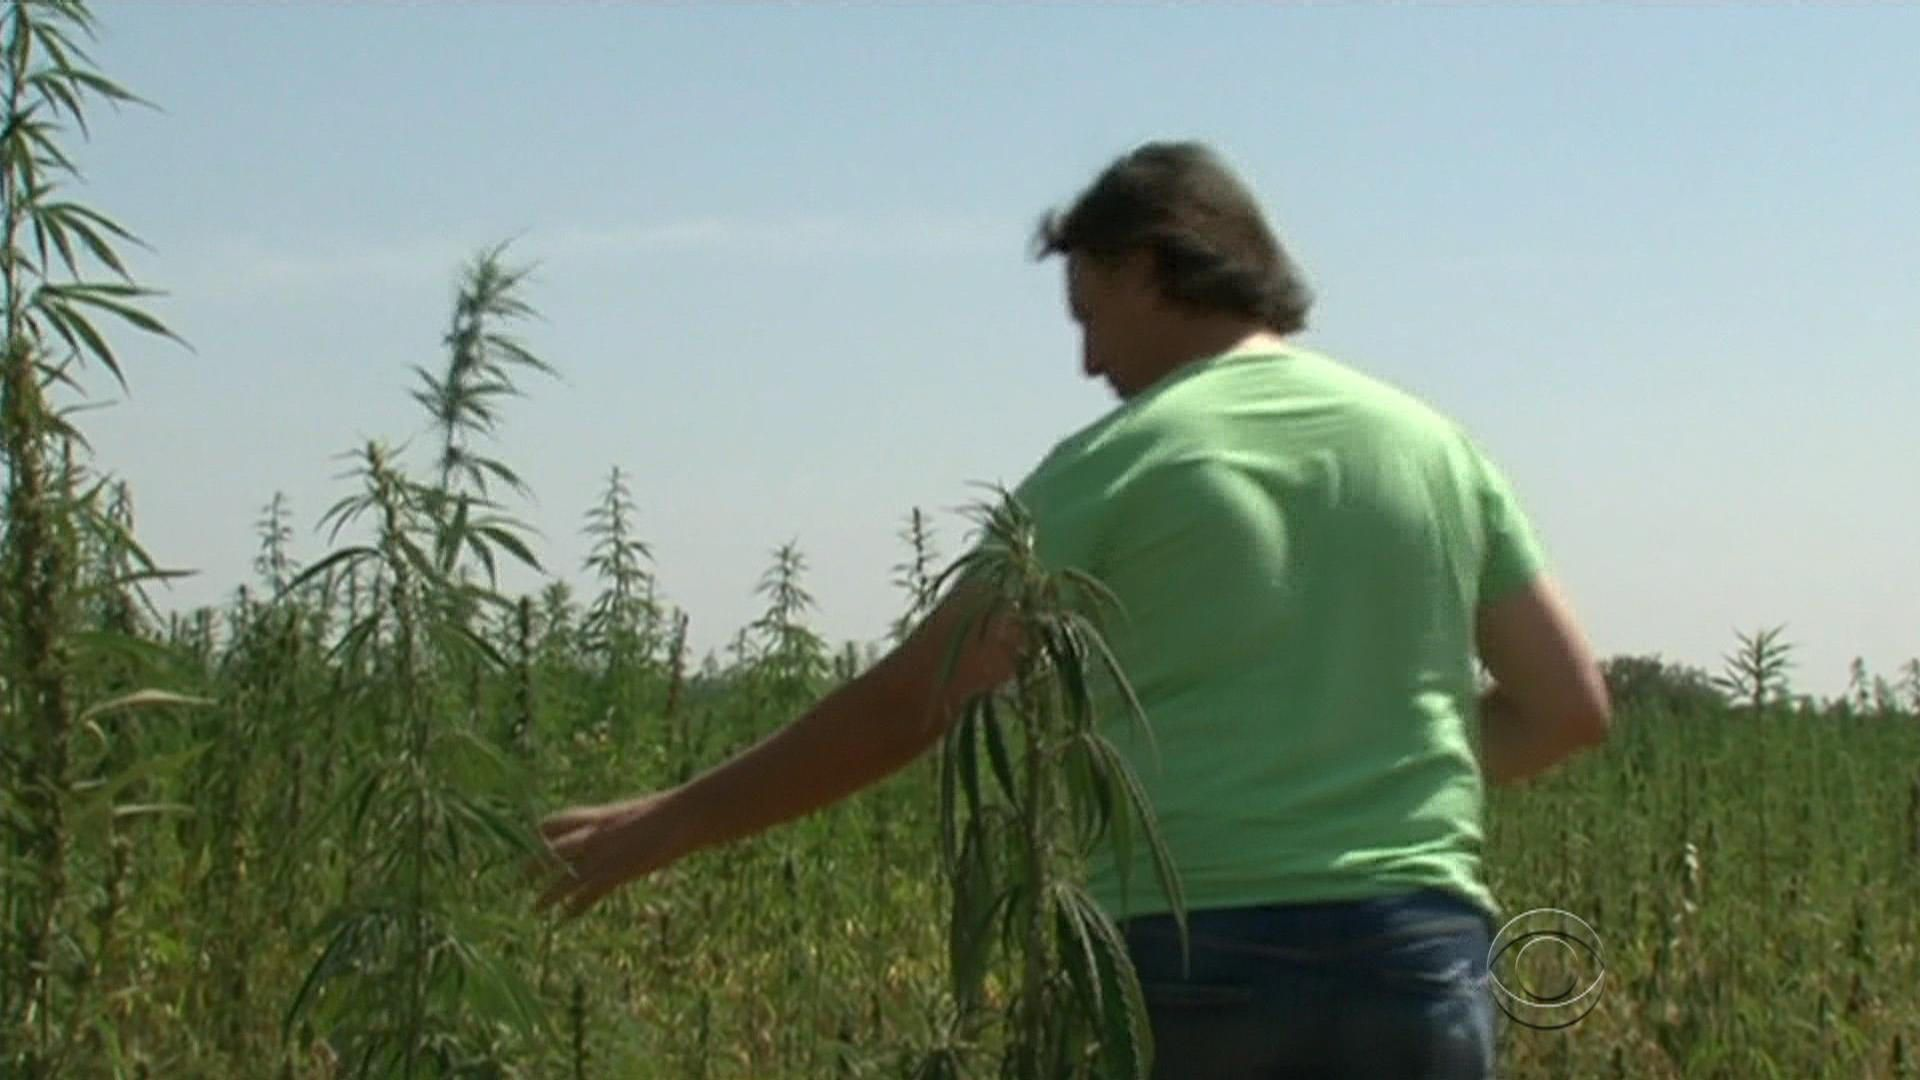 Farmers in Italy fight soil contamination with cannabis